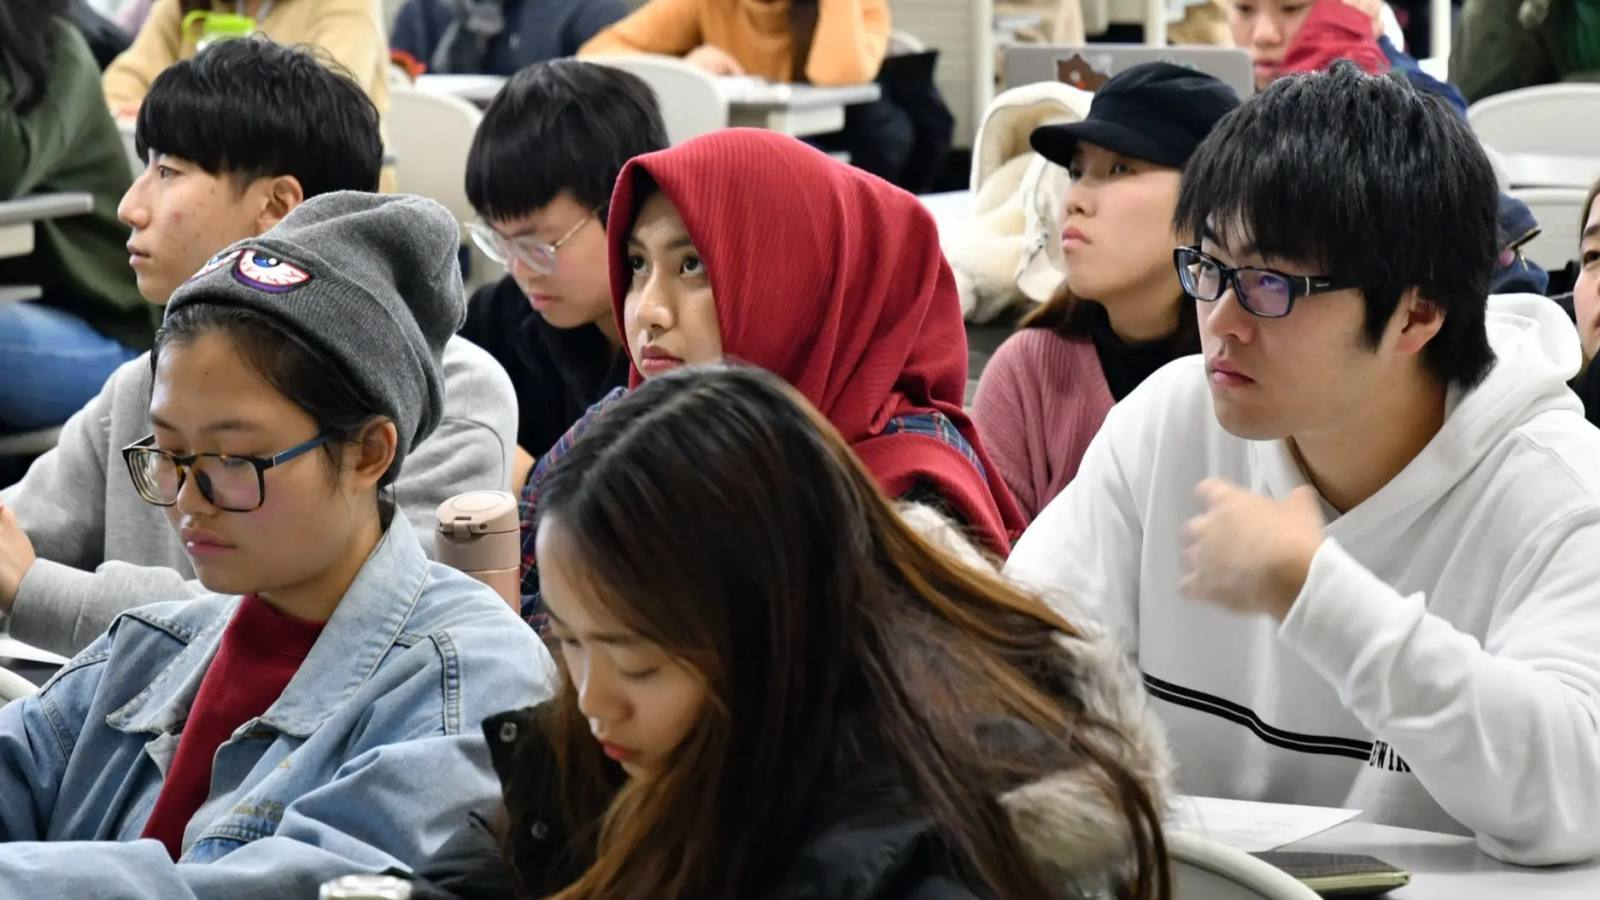 Students from abroad make up about half the enrollment at Ritsumeikan Asia Pacific University in Japan's Oita Prefecture. (Photo by Mitsunori Narabu)